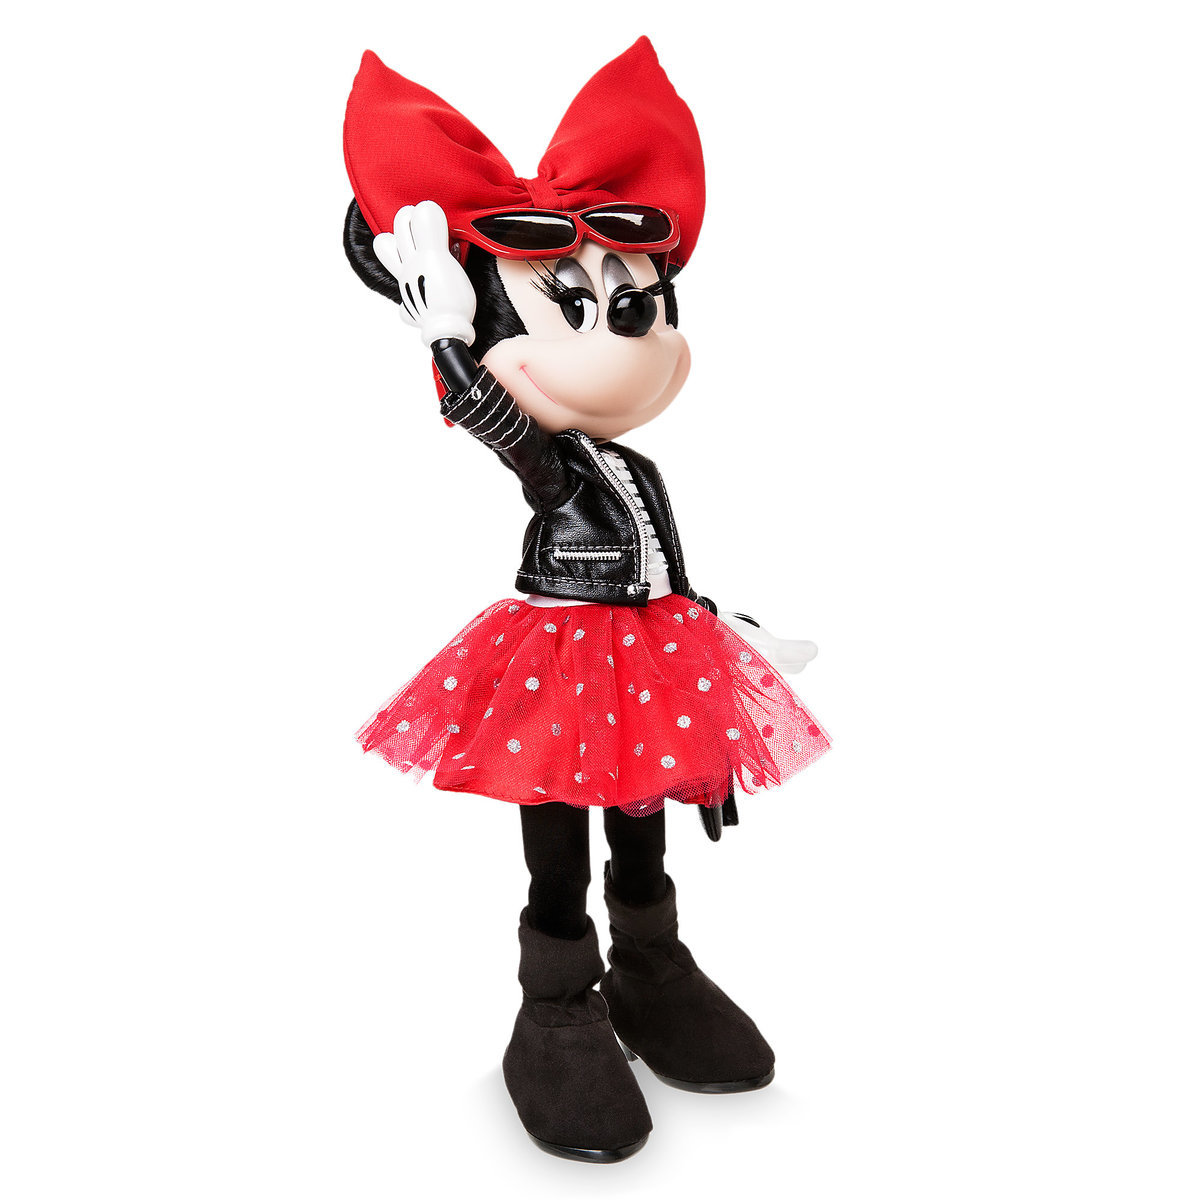 Minnie Mouse Signature Doll Out Now